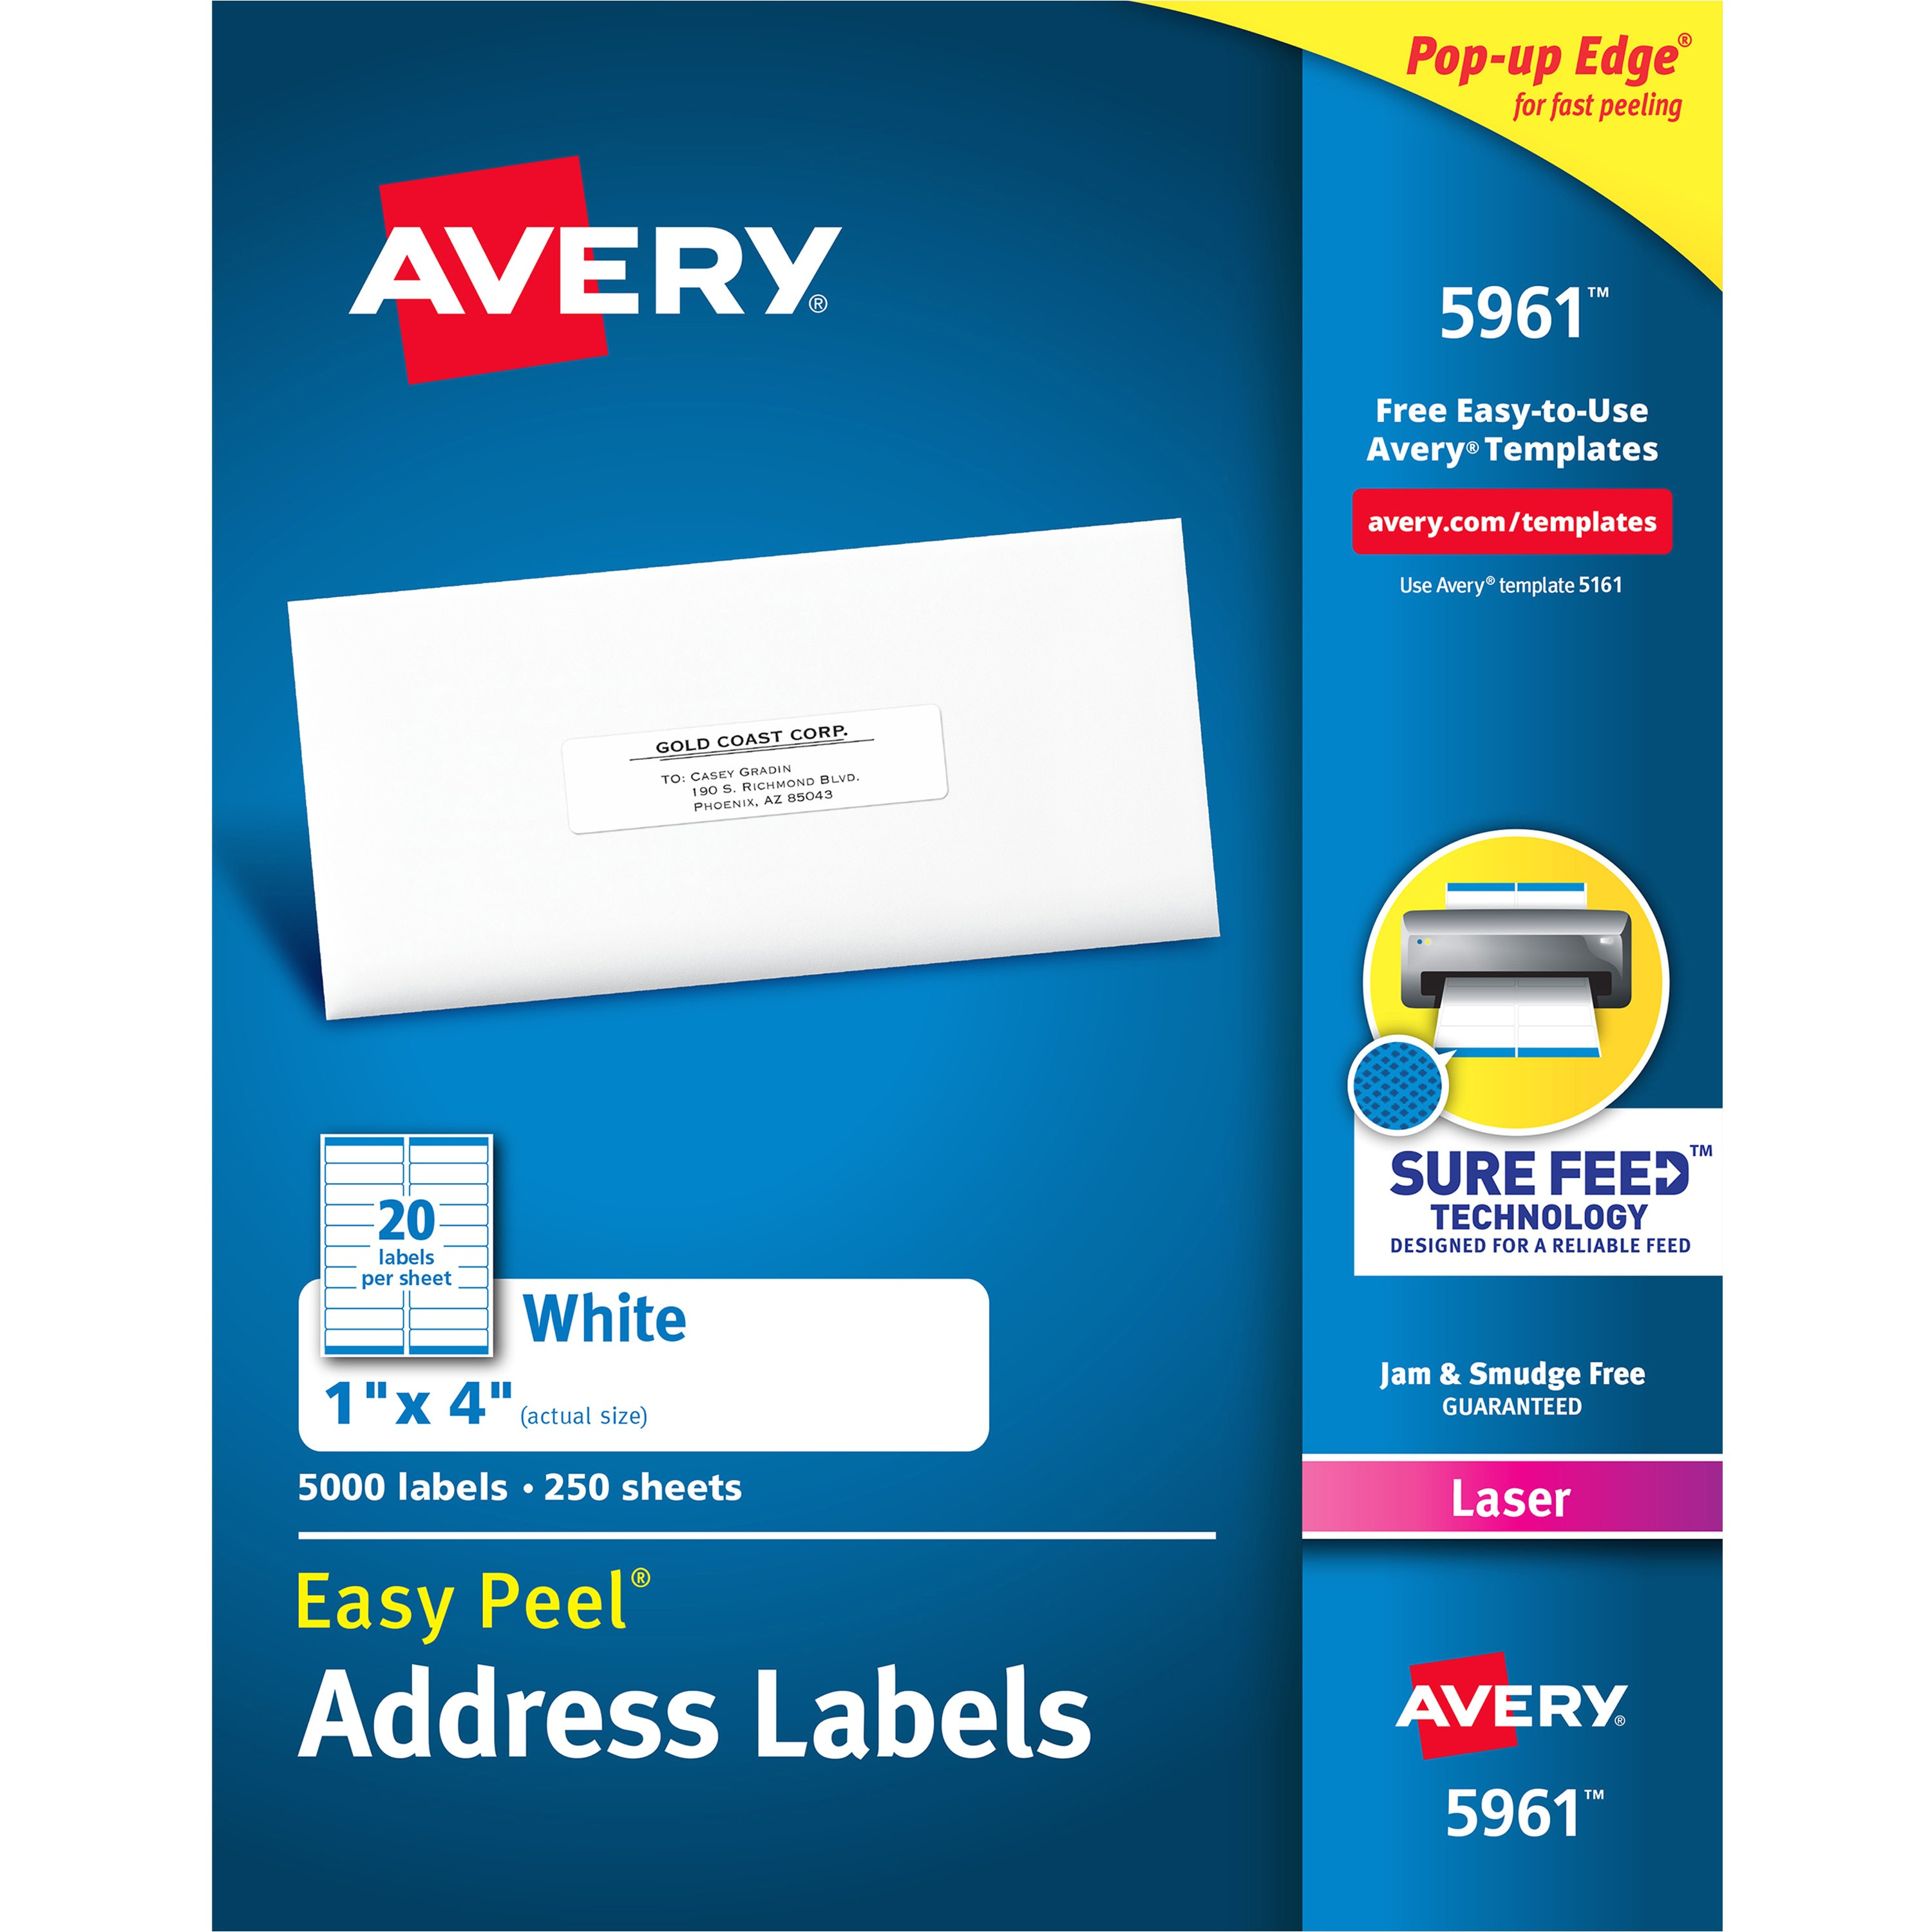 Avery 5961 Label Template Avery White Easy Peel Address Labels Ave 5961